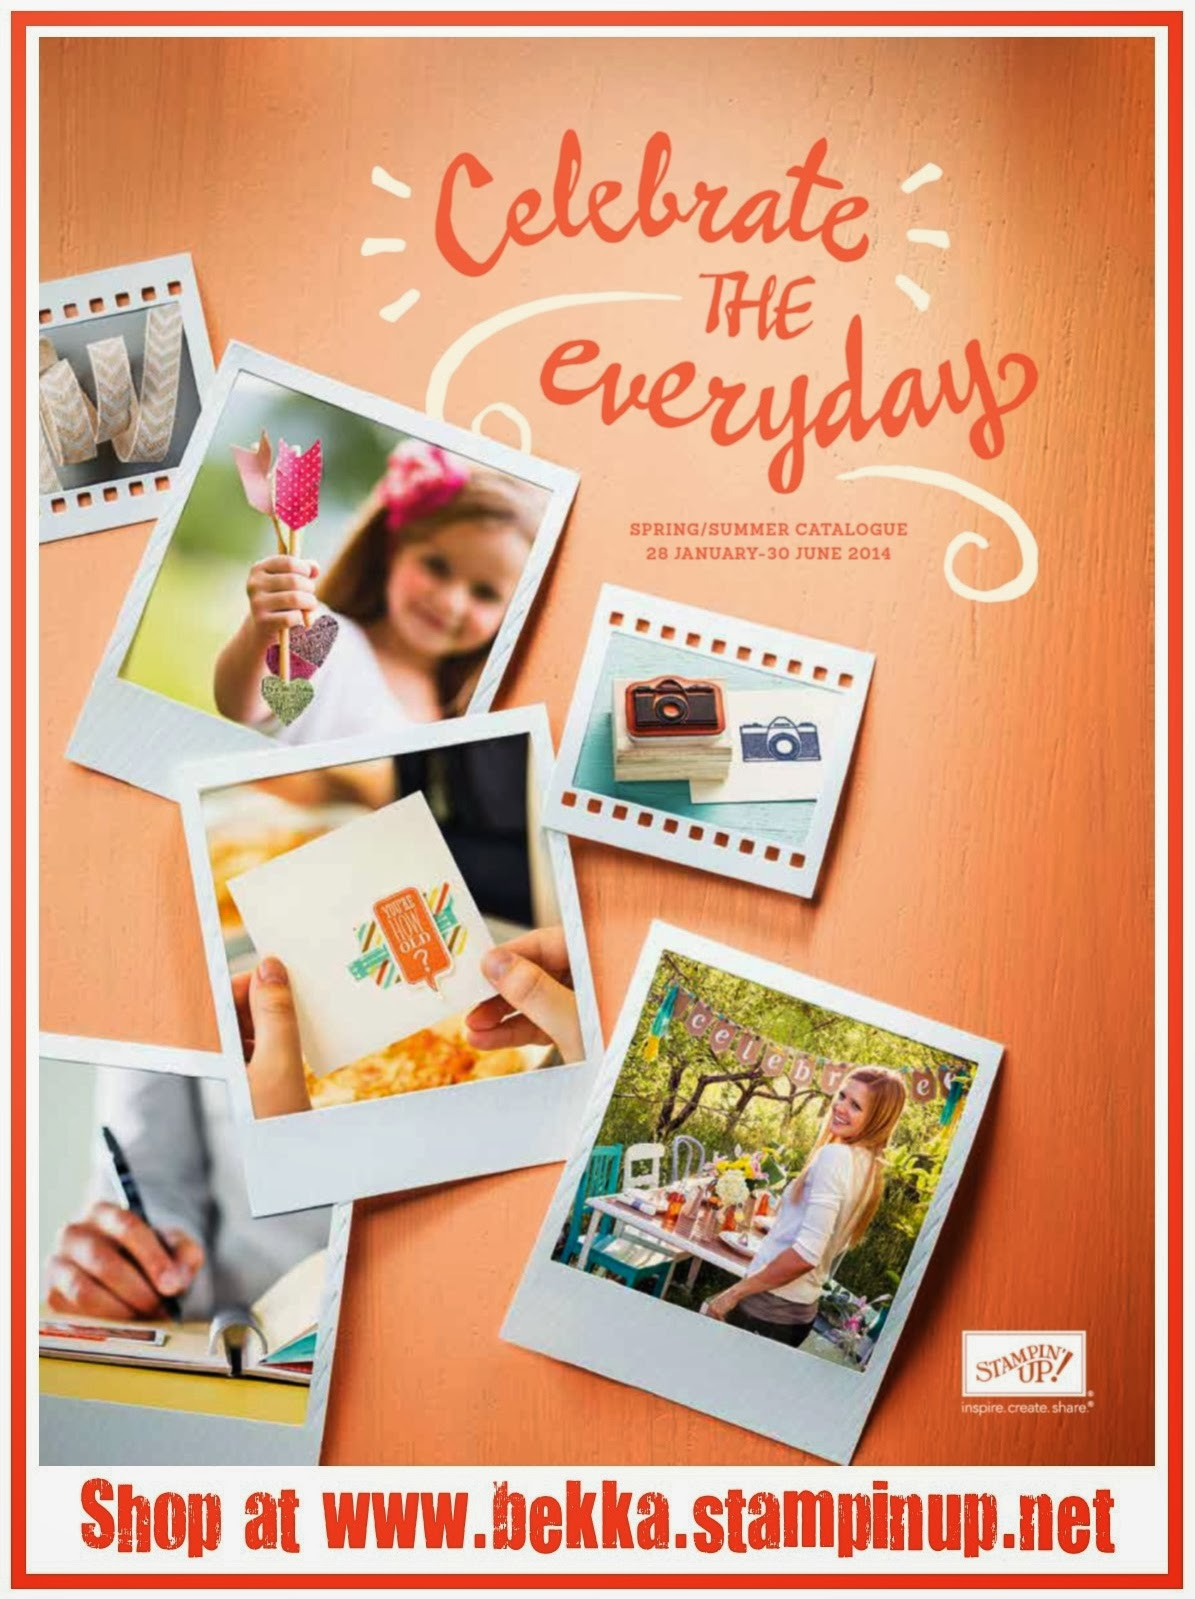 Shop the Stampin' Up! Spring Summer 2014 Catalogue at www.bekka.stampinup.net